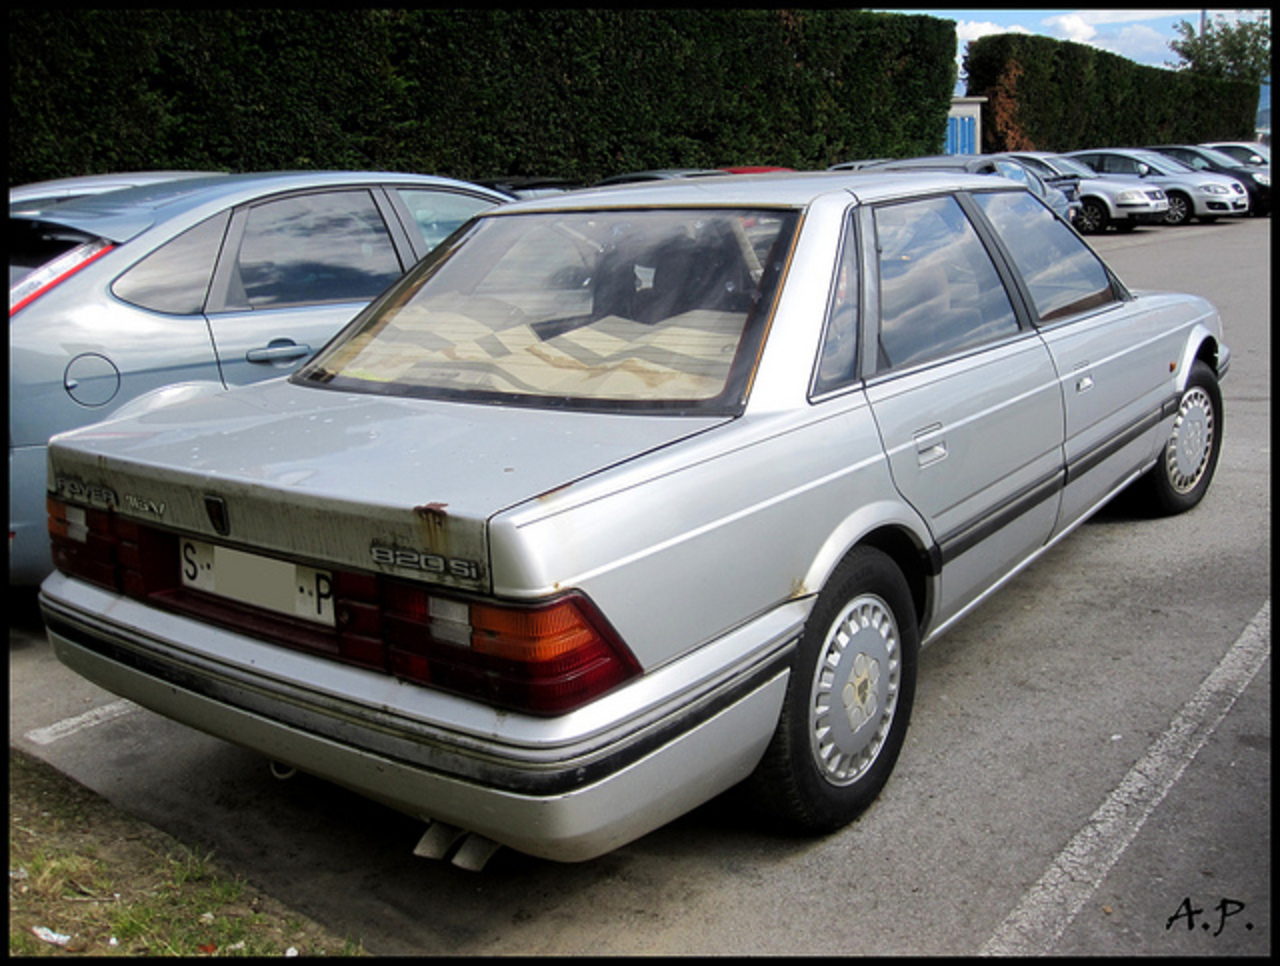 1987 Rover 820 Si | Flickr - Photo Sharing!